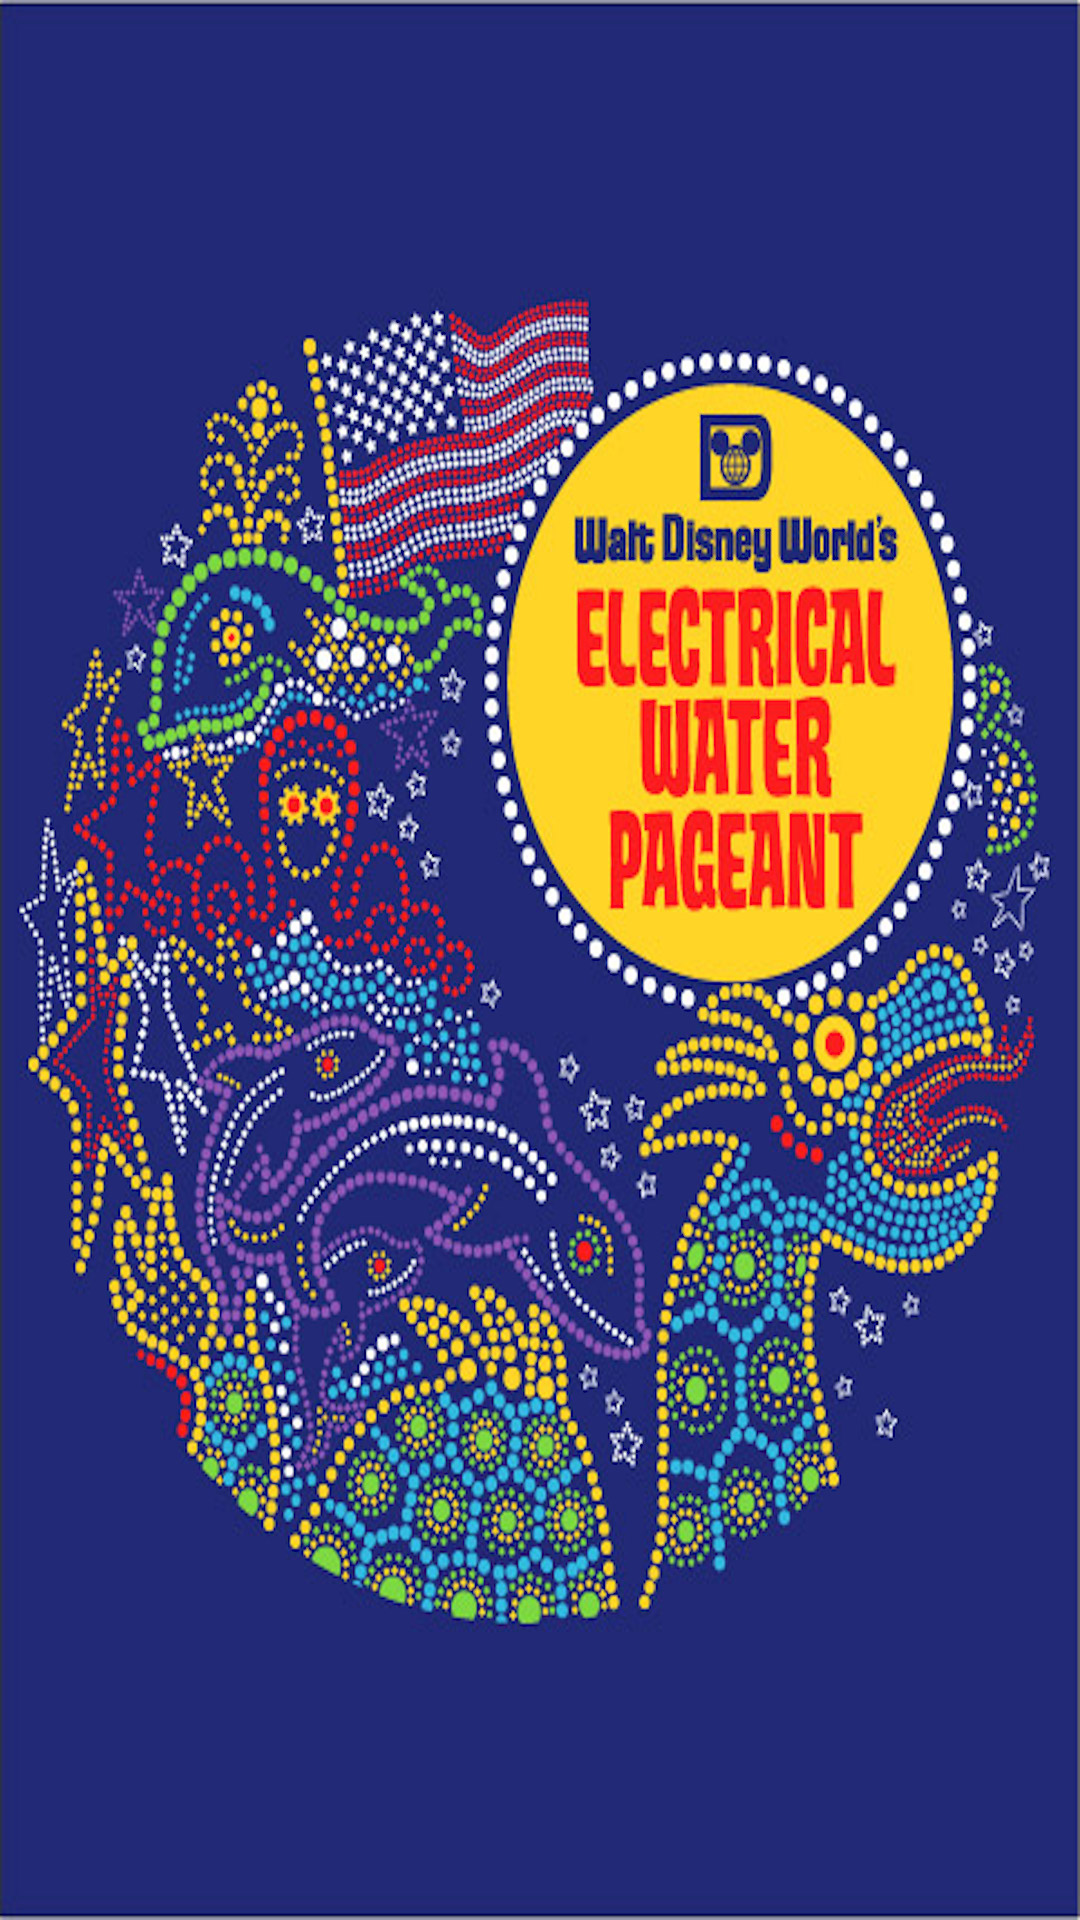 Electric Water Pageant Phone Wallpaper